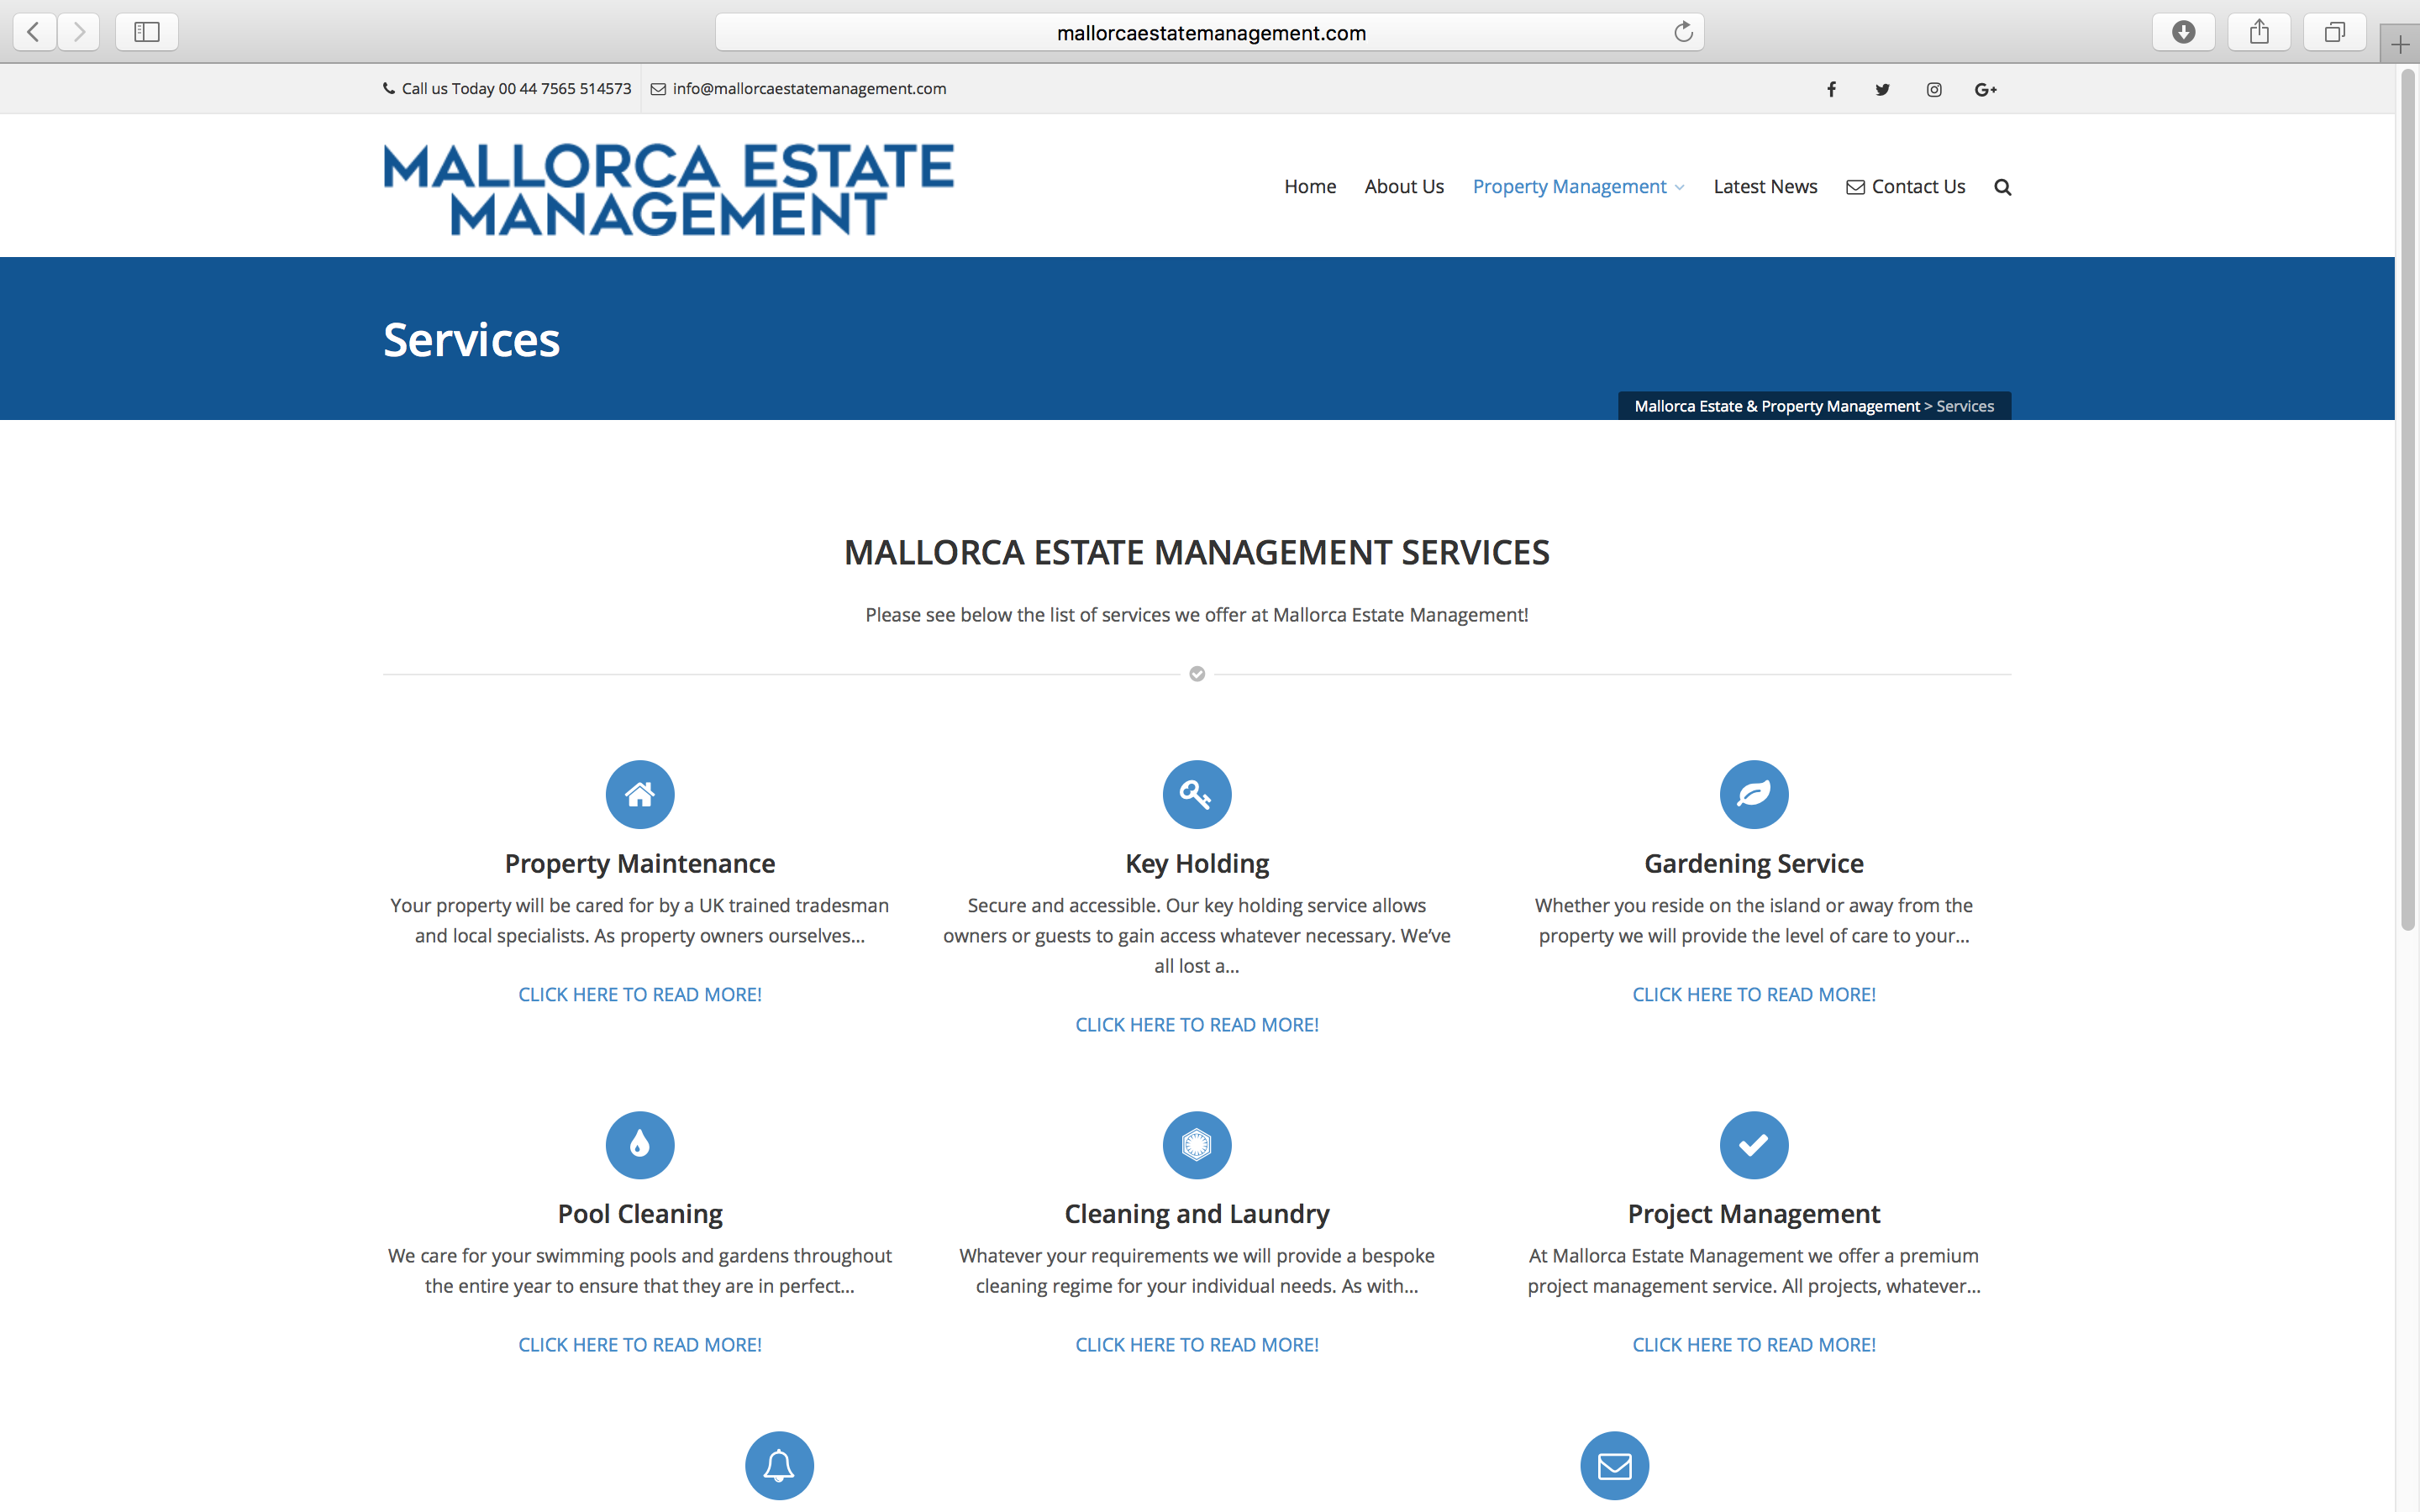 Mallorca Estate Management Blog